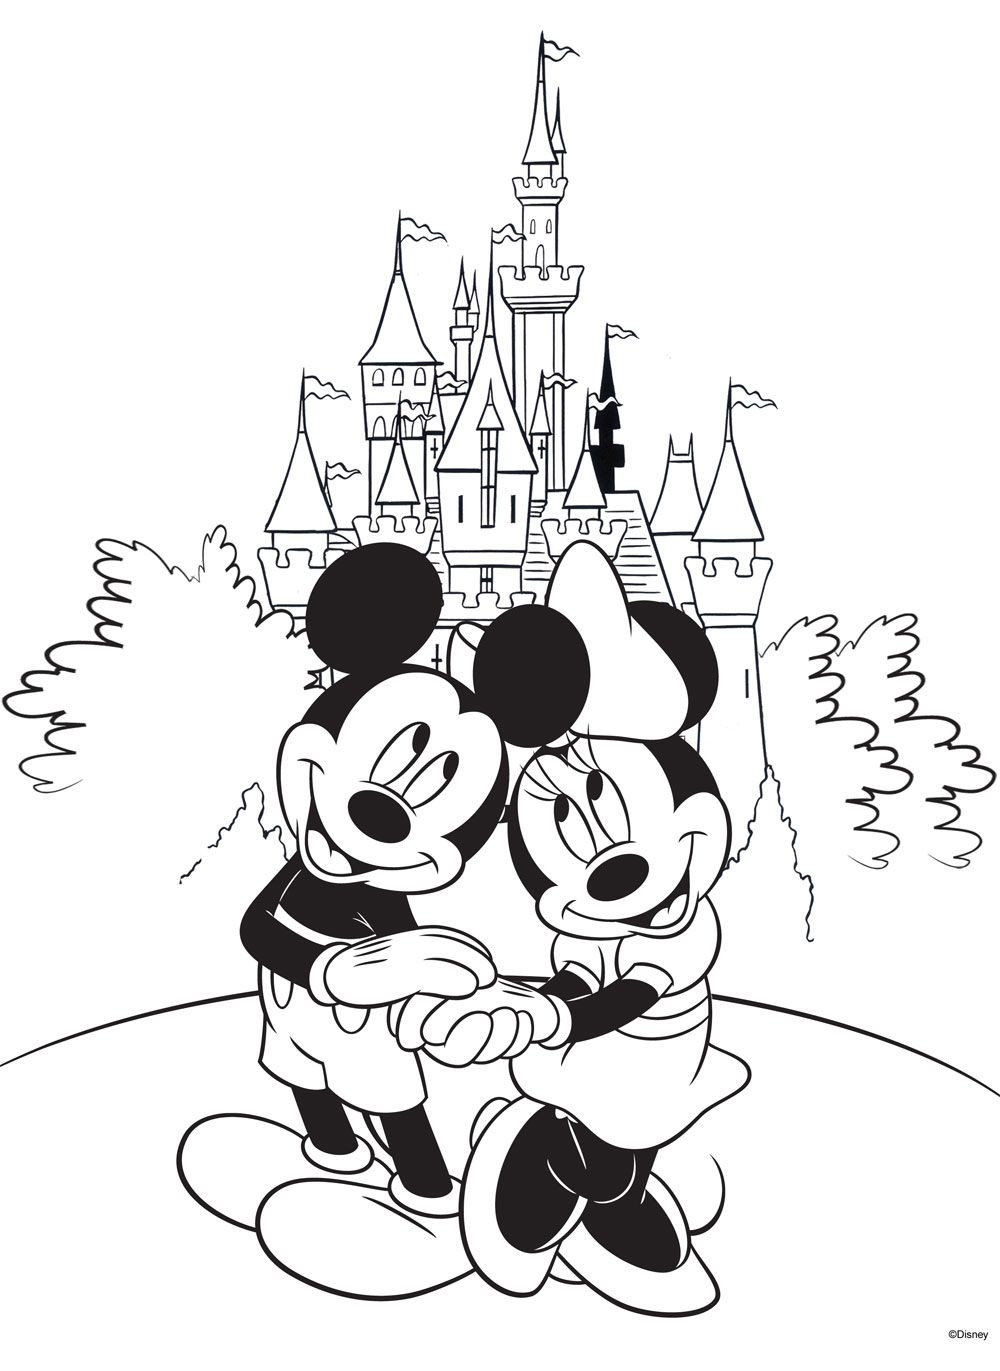 Best ideas about Printable Disney Coloring Sheets For Kids . Save or Pin Free Disney Coloring Pages DisneyColoring Pages Now.